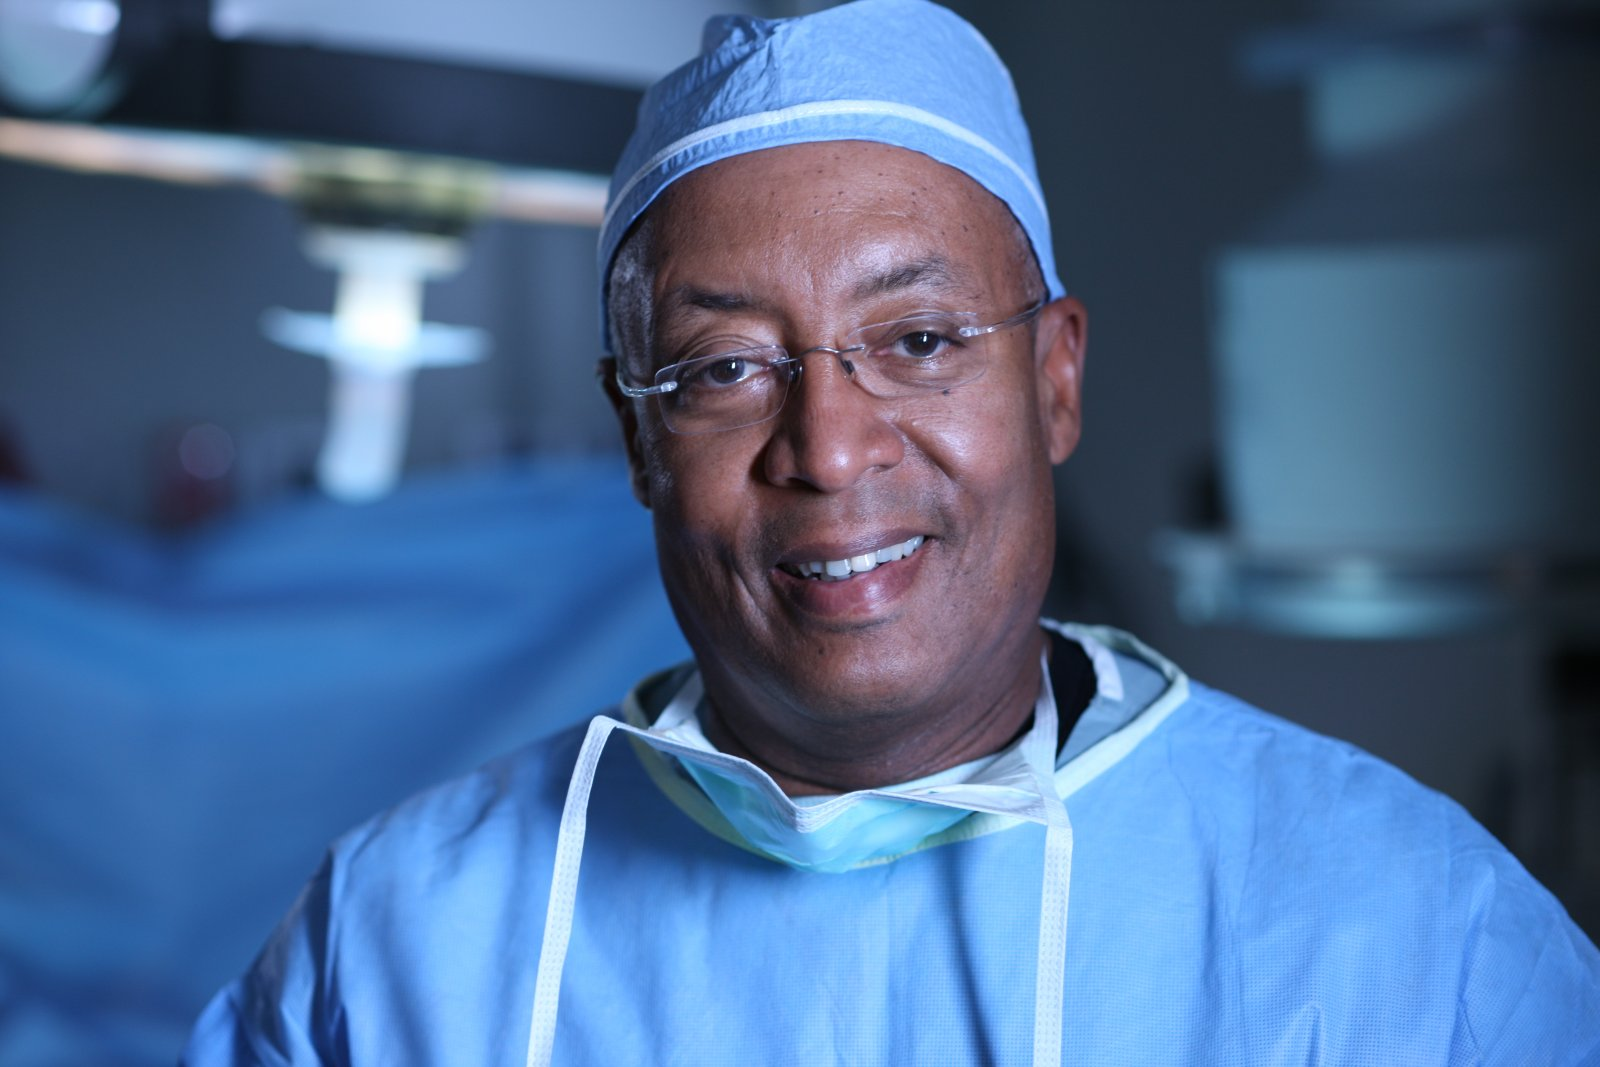 W. Bedford Waters MD poses in blue scrubs in an operating room